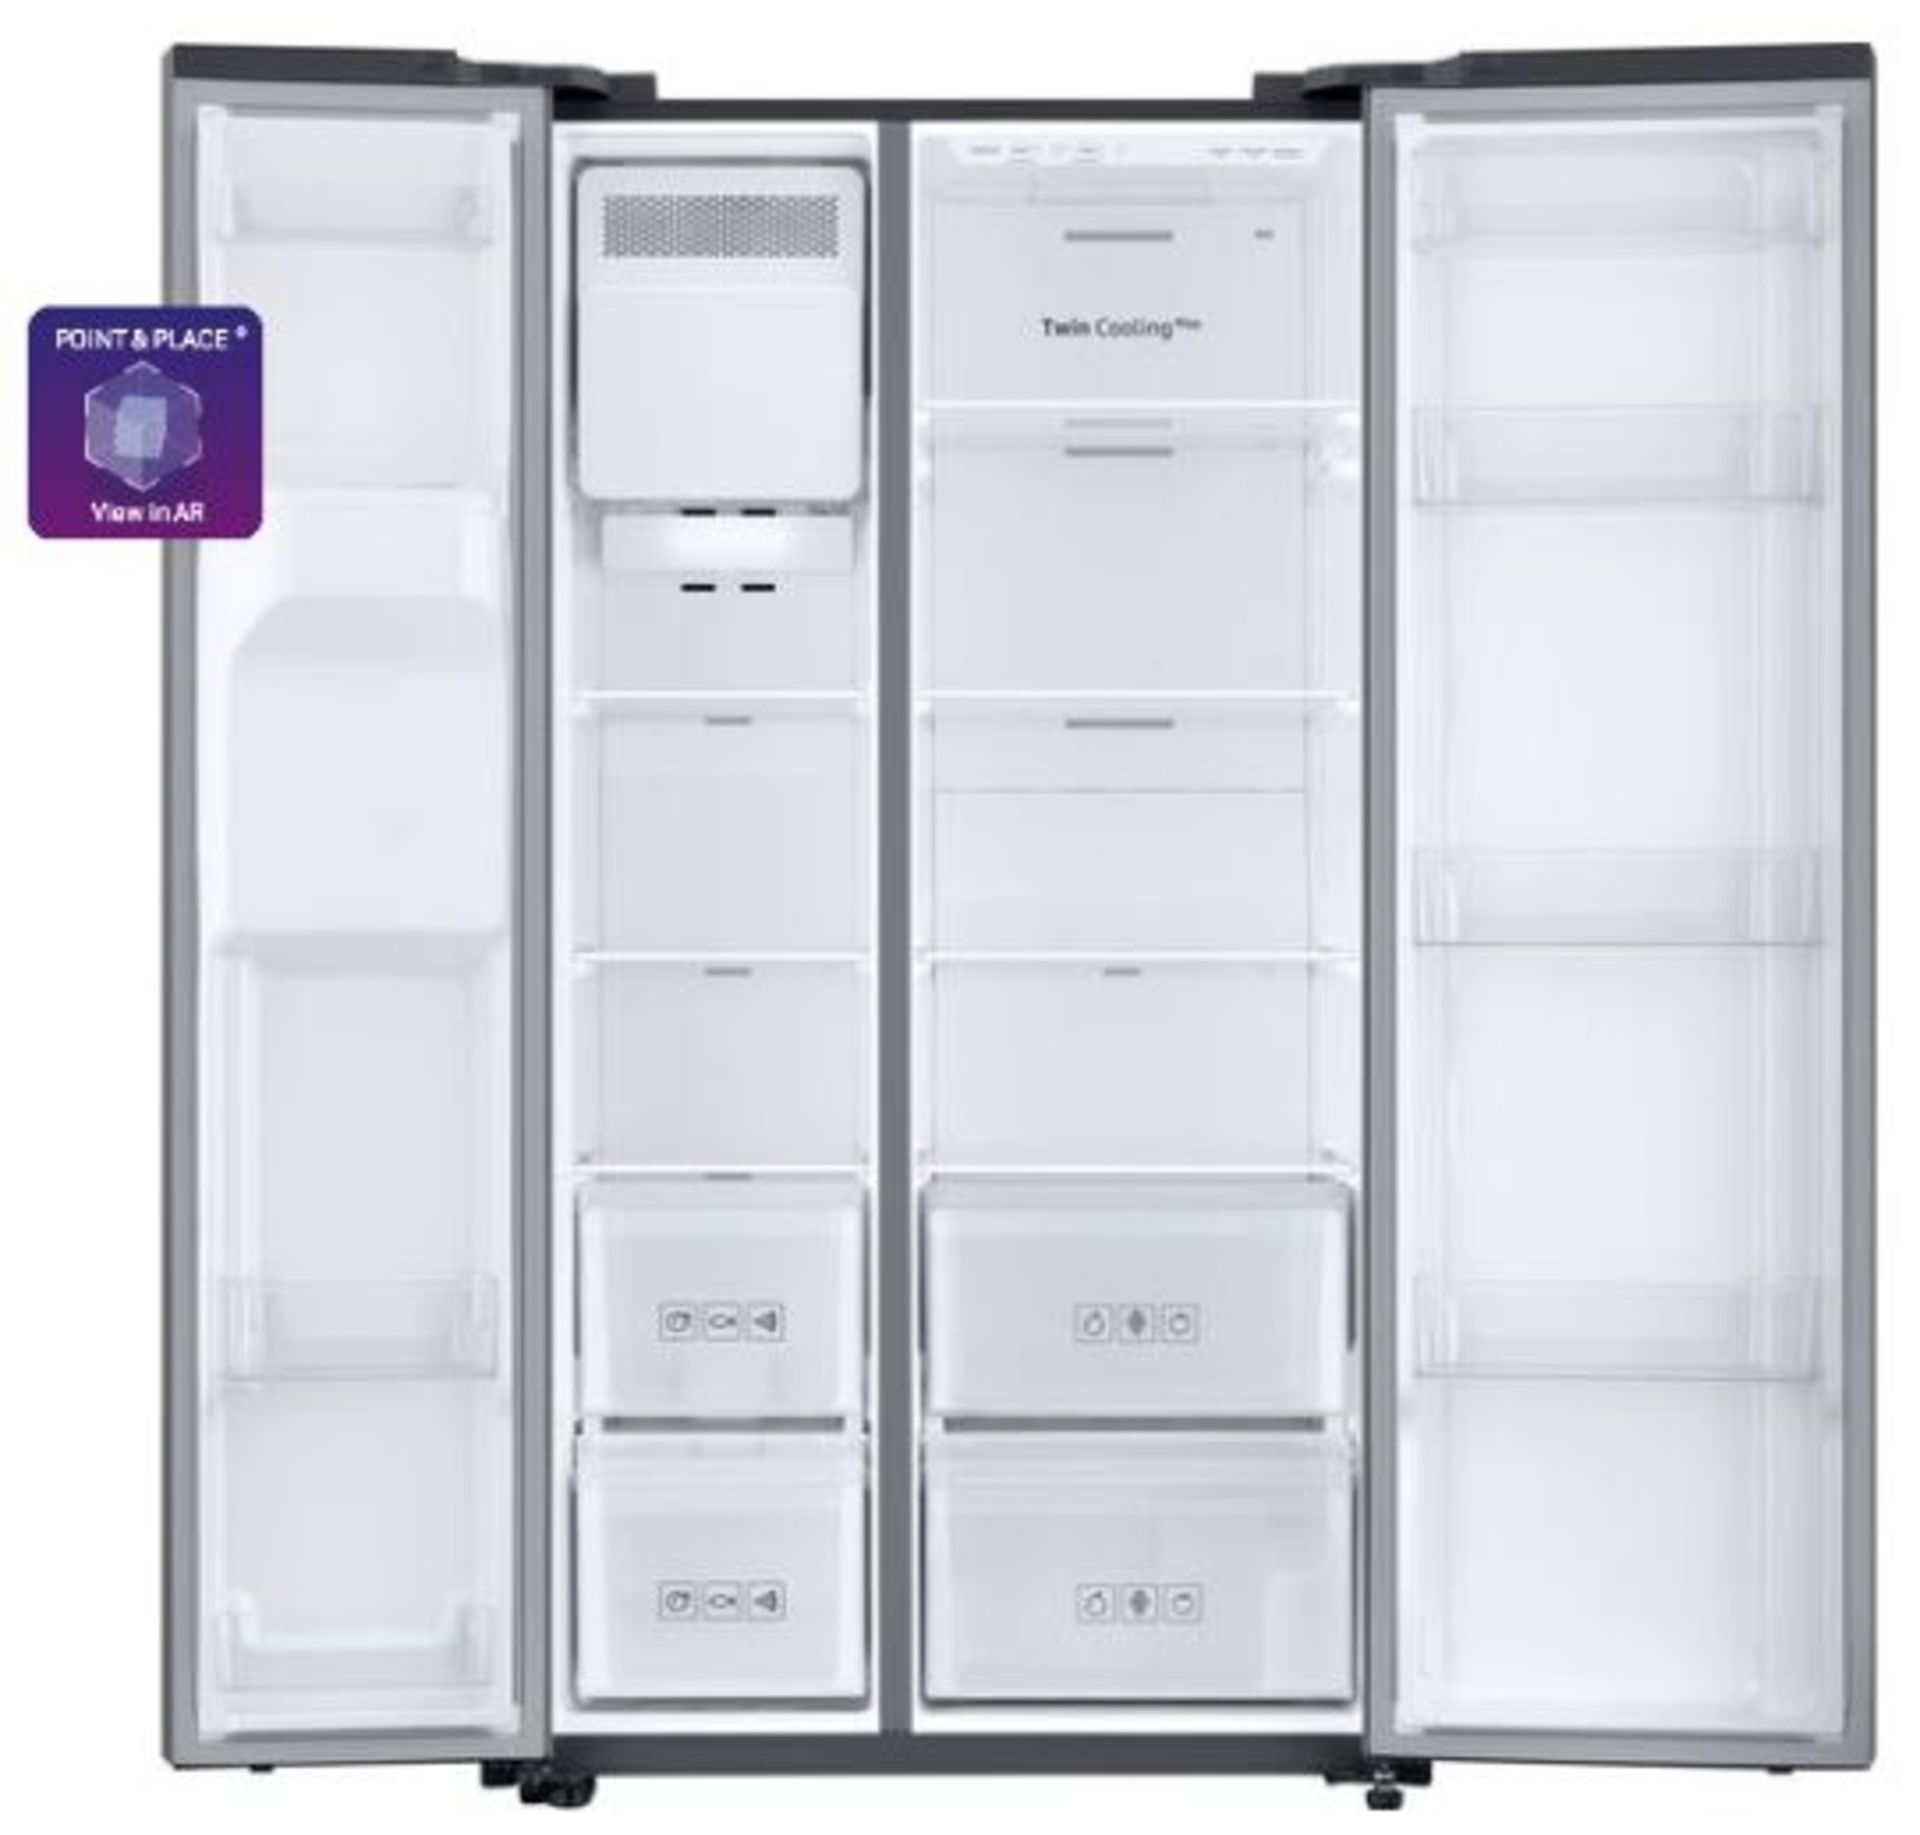 Pallet of 1 Samsung Water & Ice Fridge freezer. Latest selling price £1,299.99* - Image 2 of 7